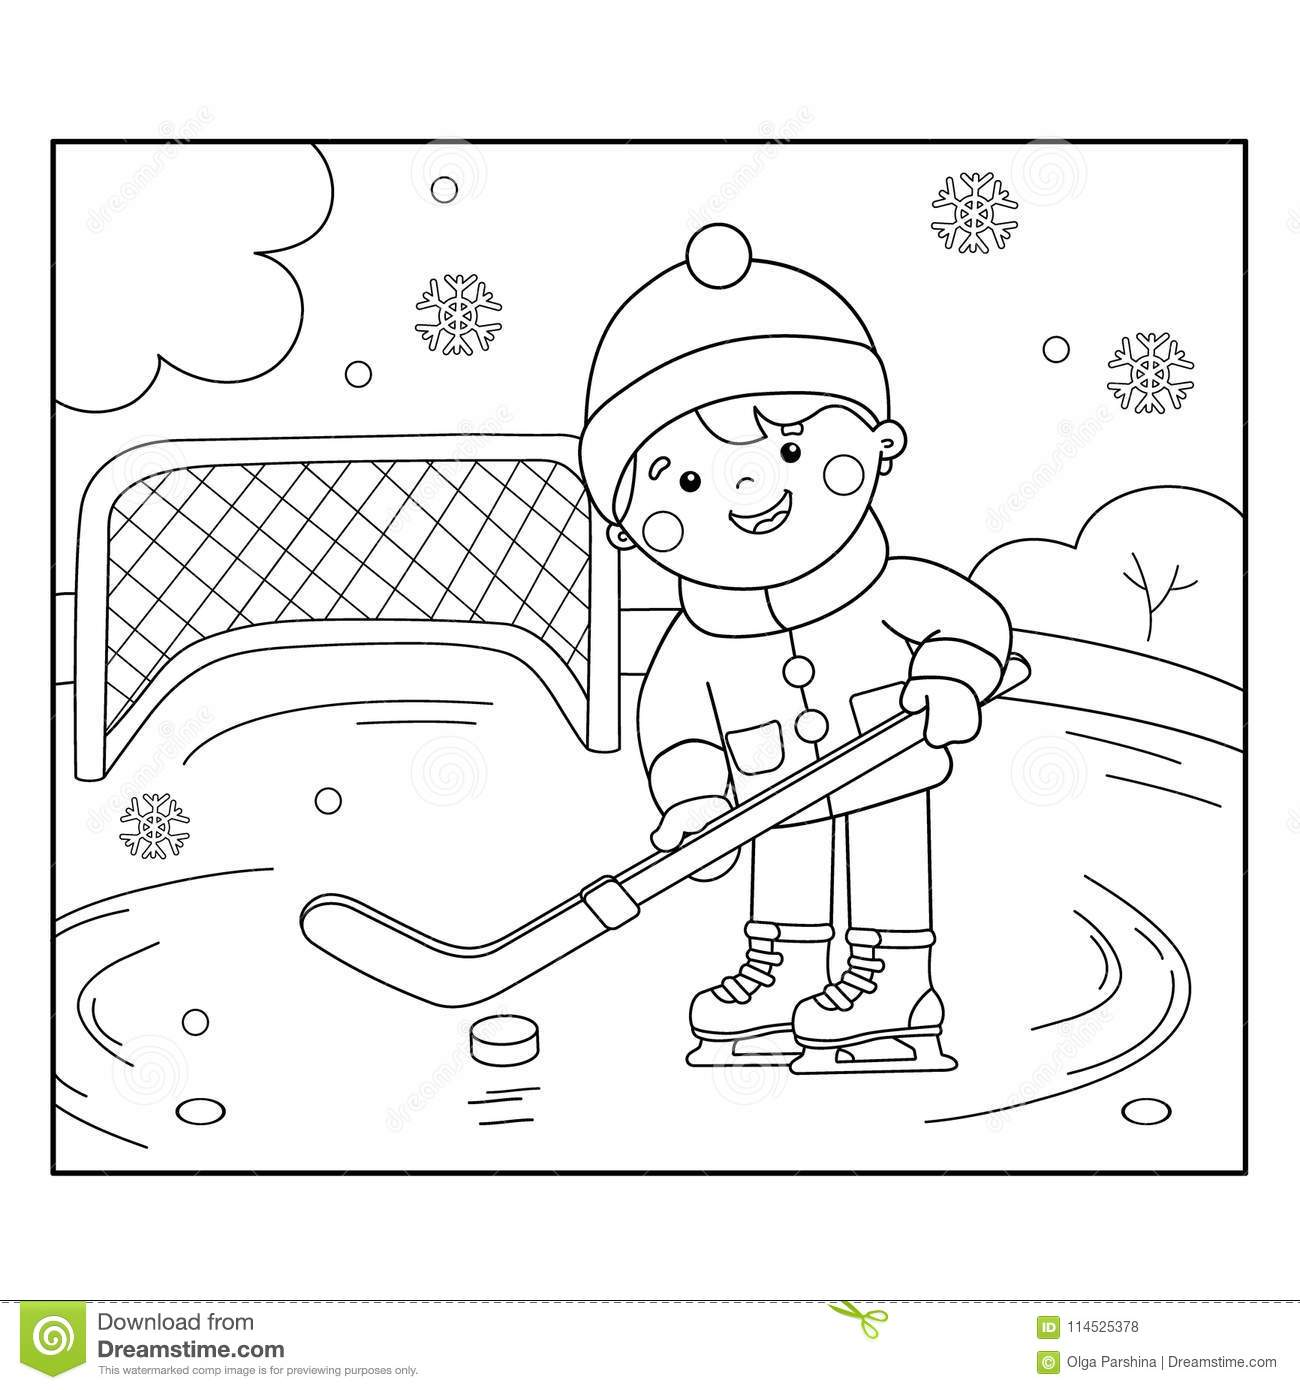 Coloring Page Outline Of Cartoon Boy Playing Hockey. Stock ...